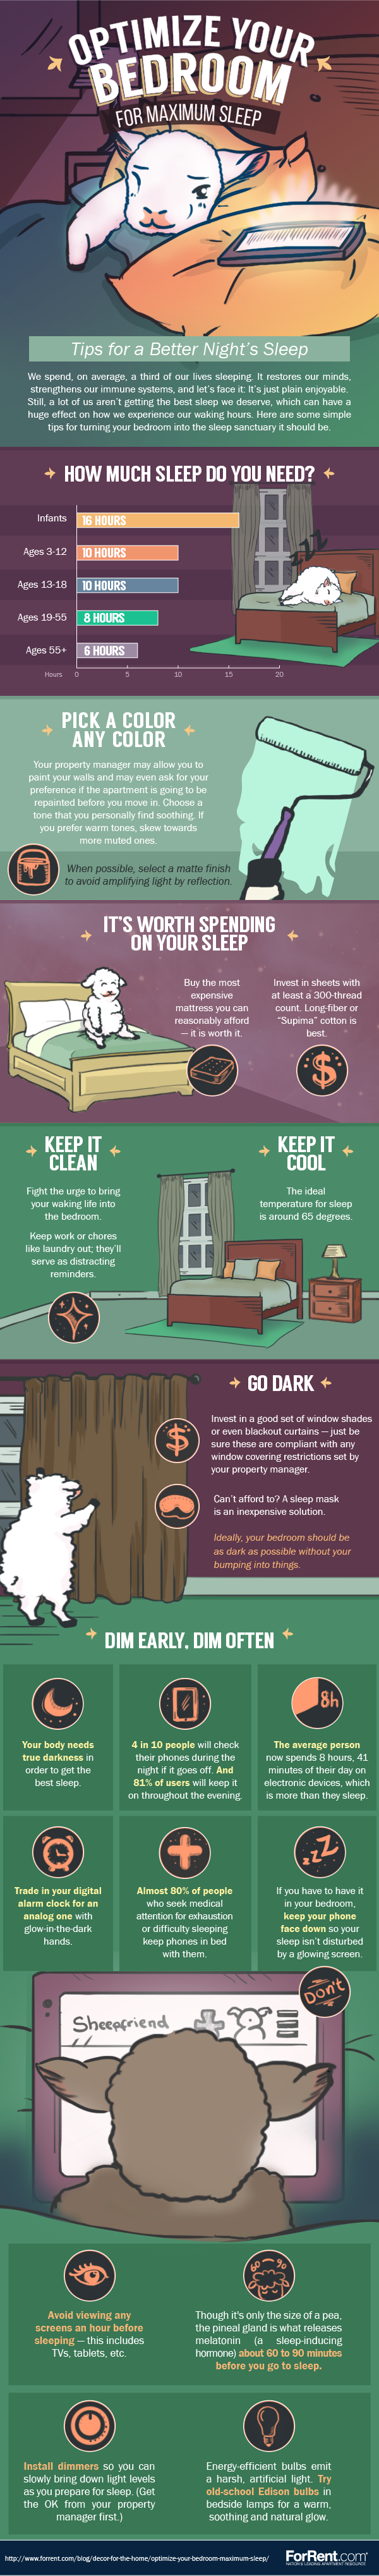 Transform Your Bedroom For The Best Night's Sleep - Infographic